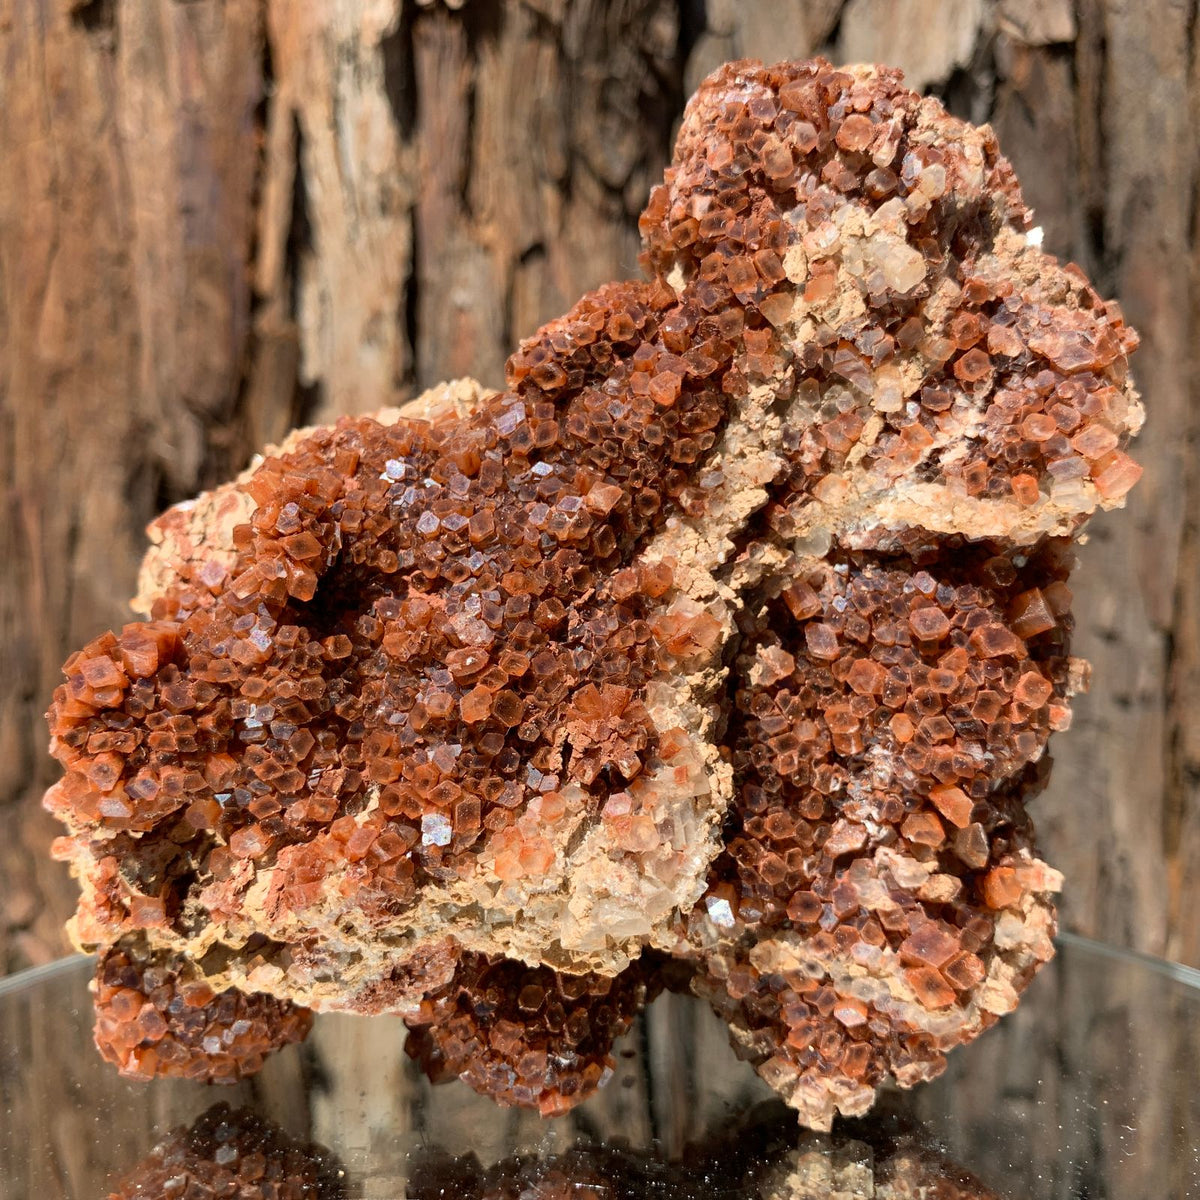 14.7cm 768g Aragonite from Morocco